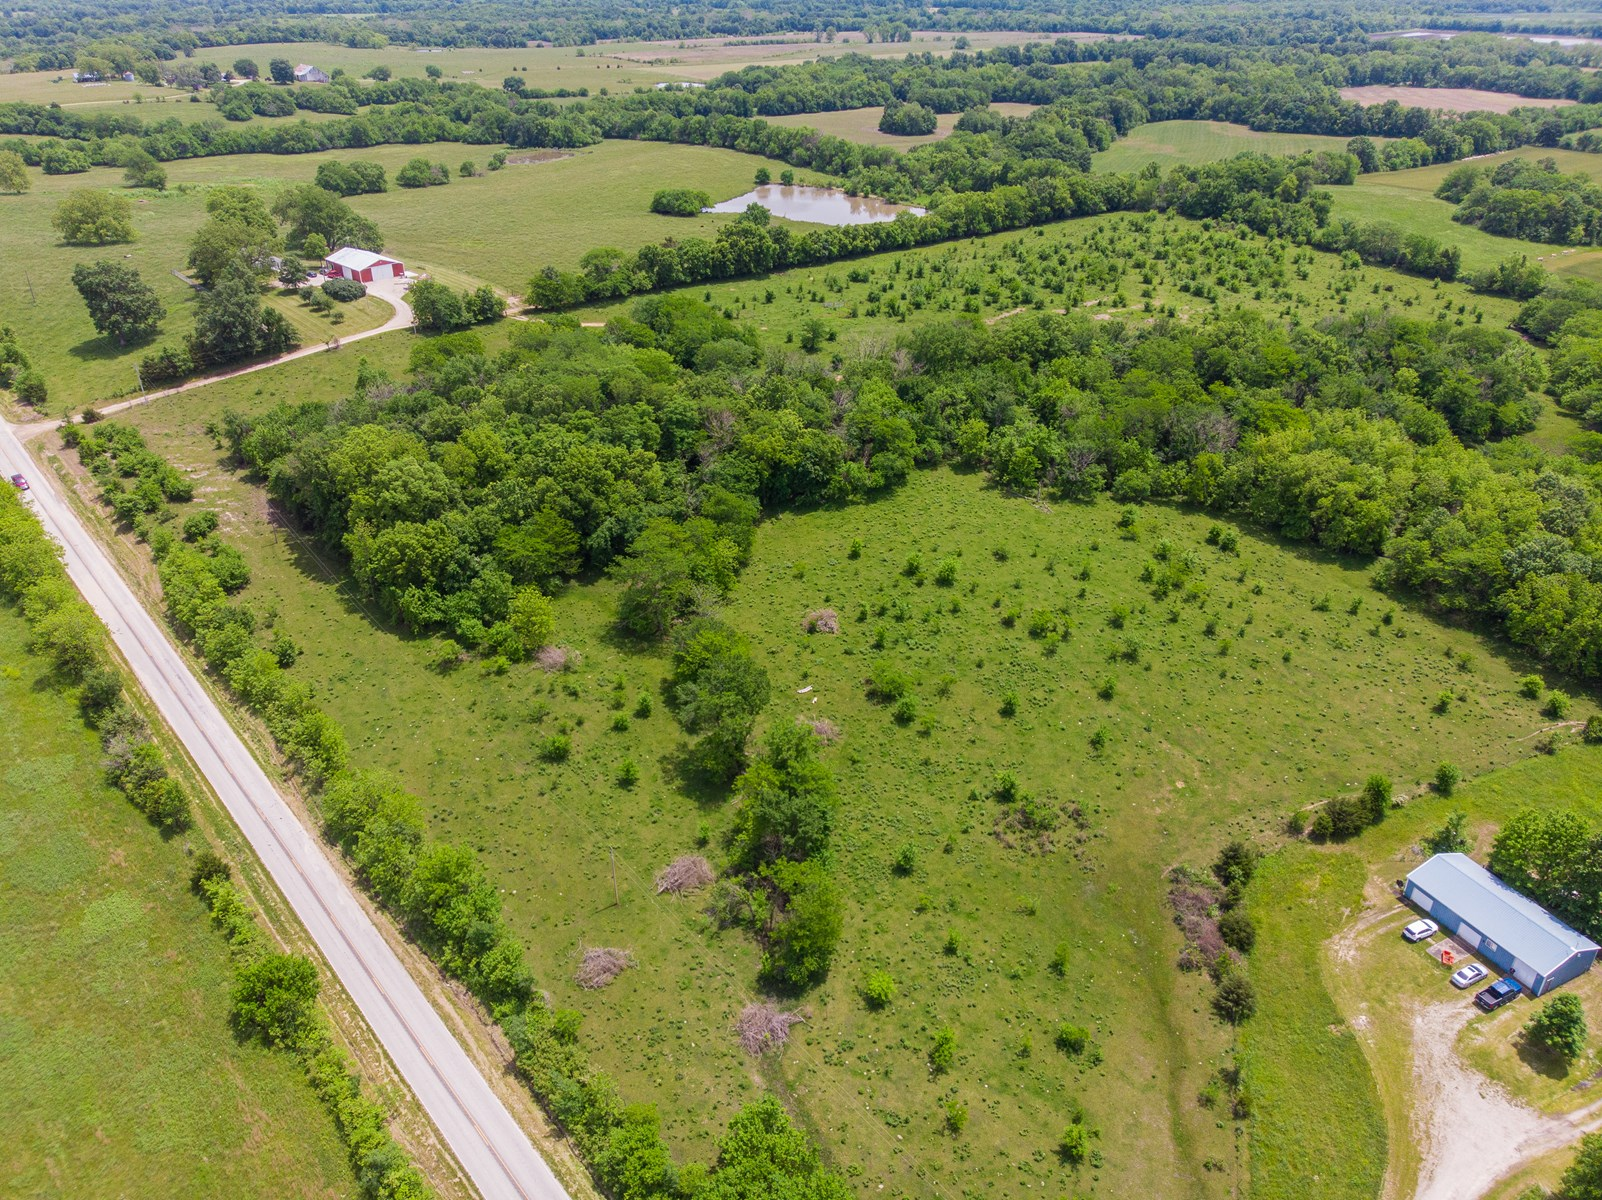 Acreage in Cass County, MO For Sale